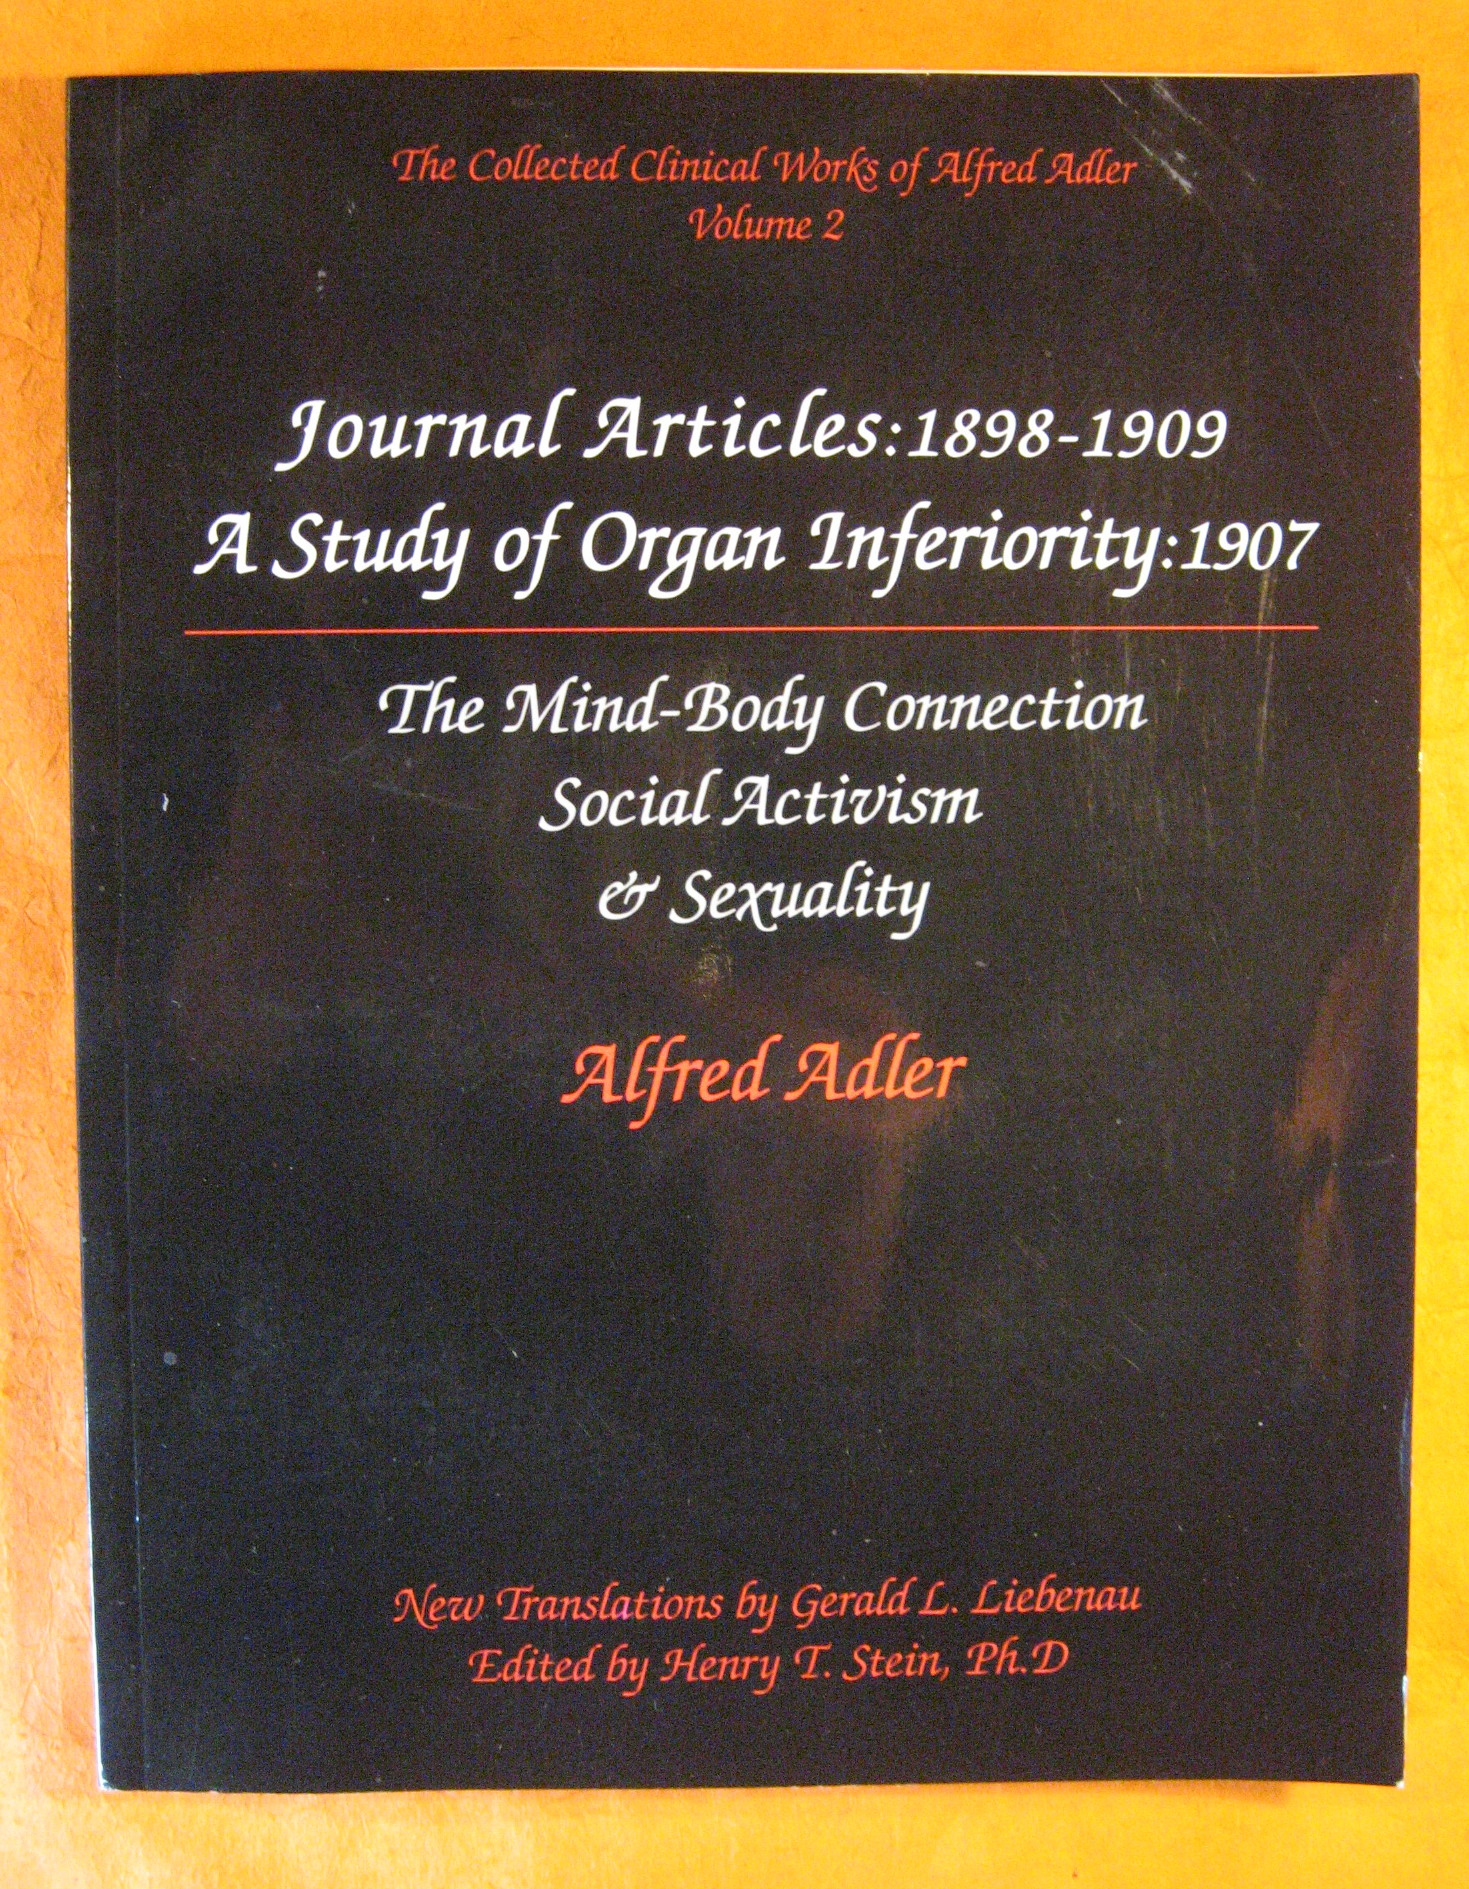 Journal Articles: 1898-1909: The MInd-Body Connection, Social Activism, & Sexuality (The Collected Clinical Works of Alfred Adler, Volume 2 ), Adler, Alfred; Stein, Edward T. (editor)